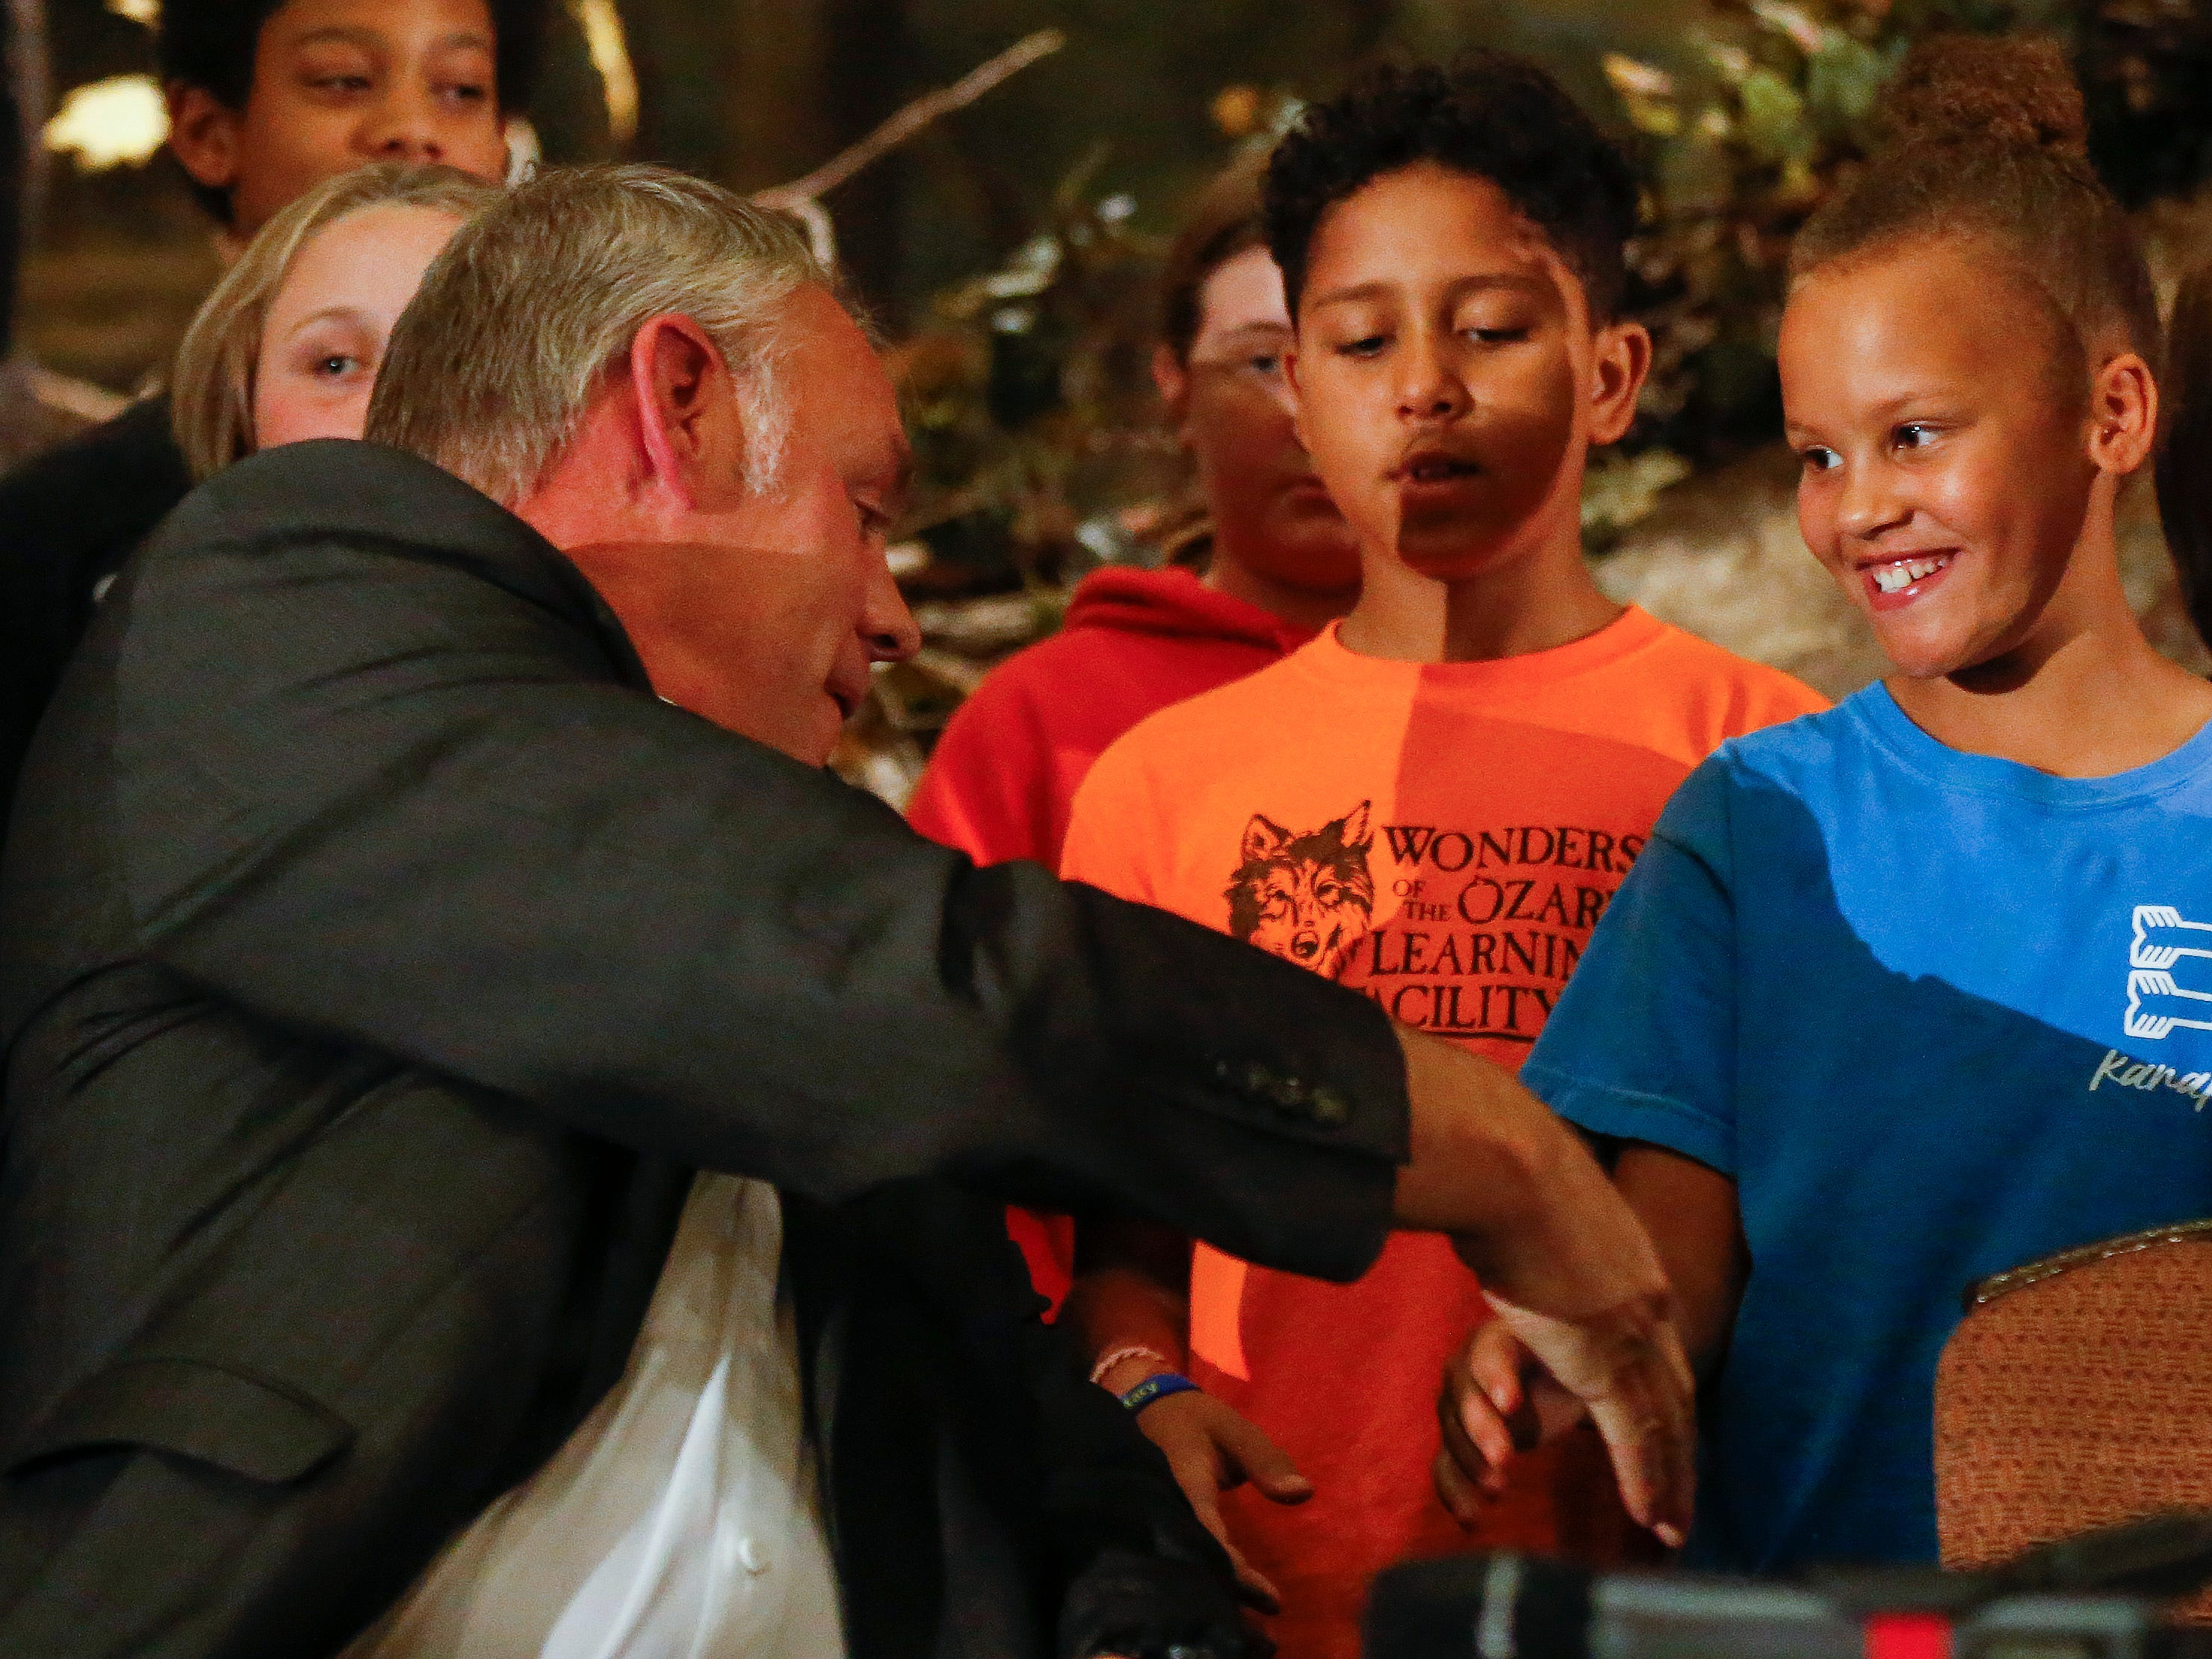 U.S. Secretary of the Interior Ryan Zinke shakes hands with students from the WOLF School before signing a proclamation during the 11th Annual Private Lands Partners Day at the White River Conference Center on Thursday, Oct. 4, 2018.